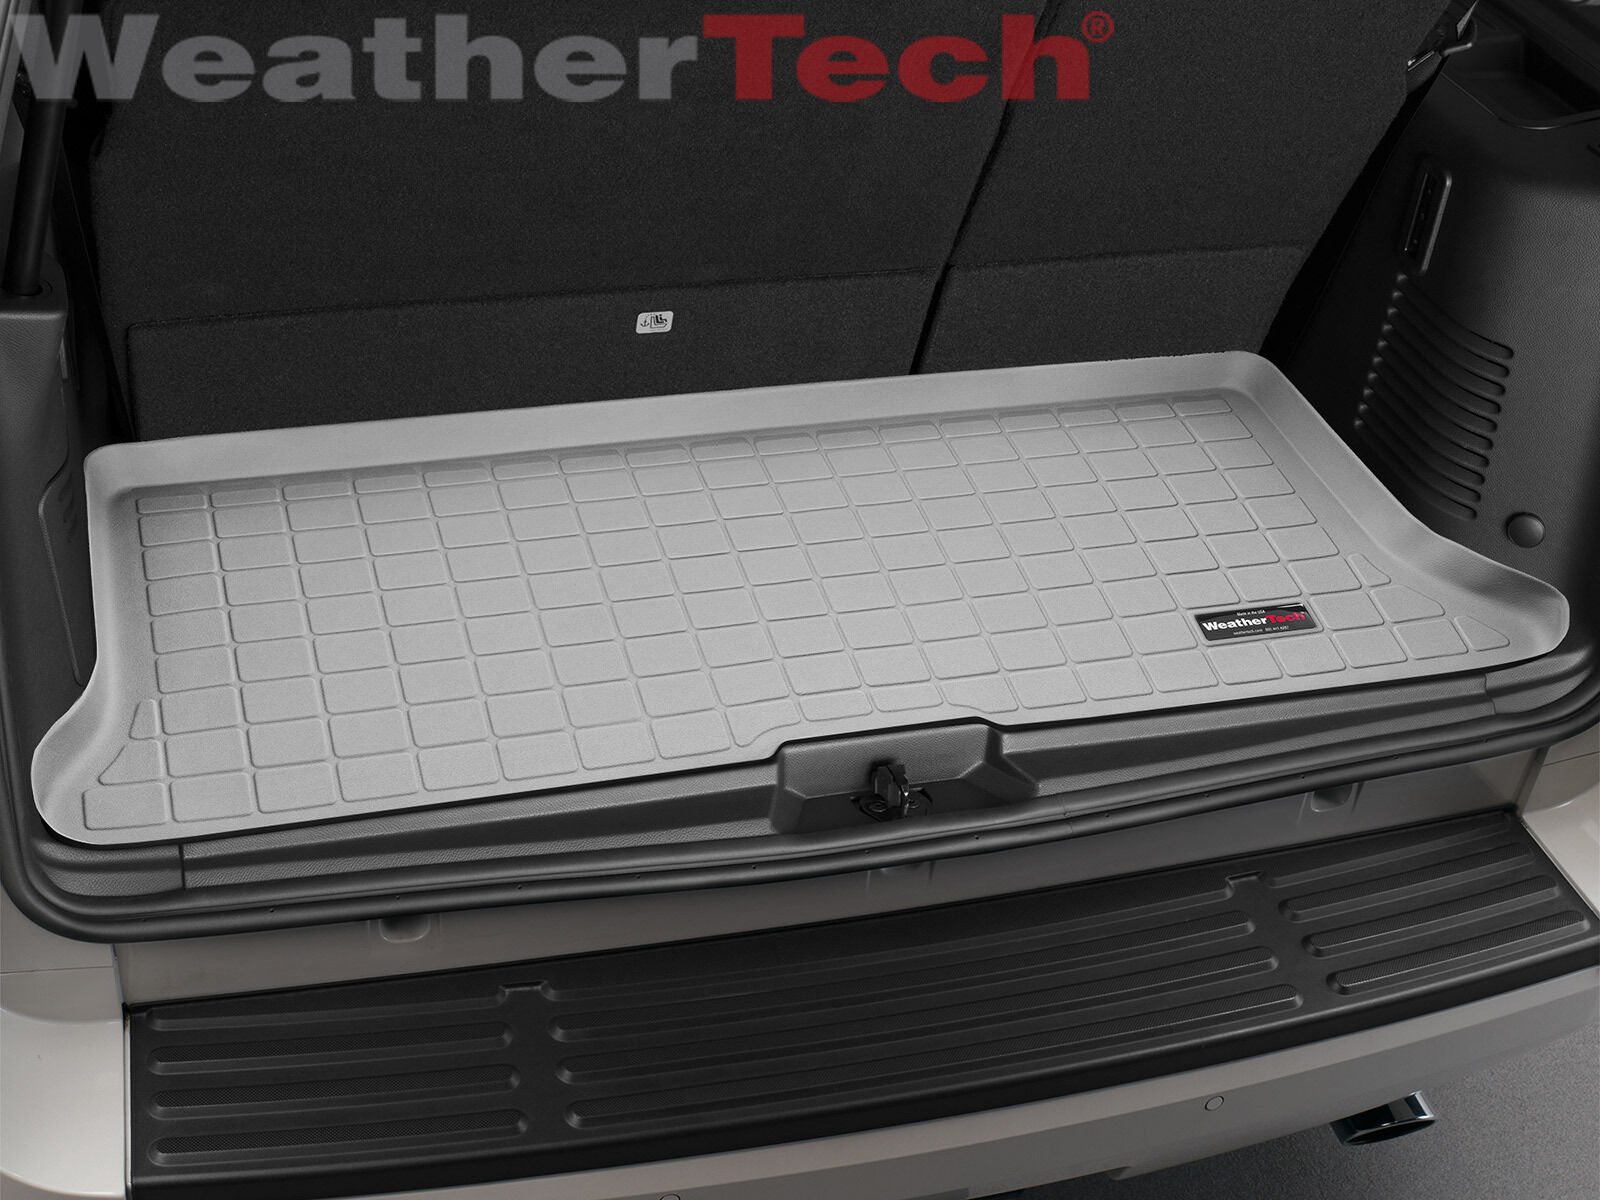 WeatherTech Custom Fit Cargo Liners for Ford Expedition Grey